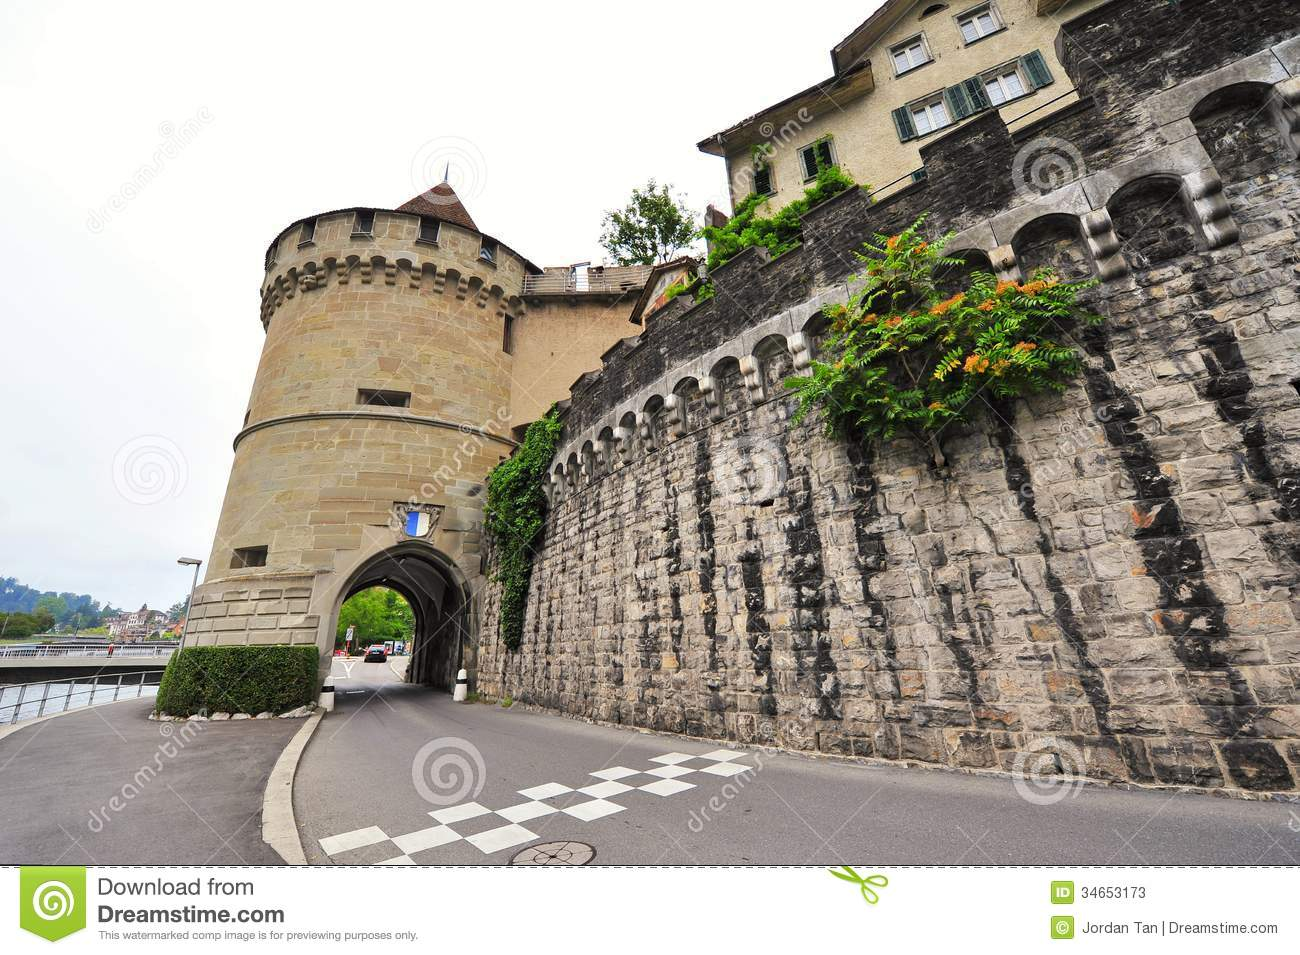 Musegg Wall And Tower In Lucerne, Switzerland Stock Photos.